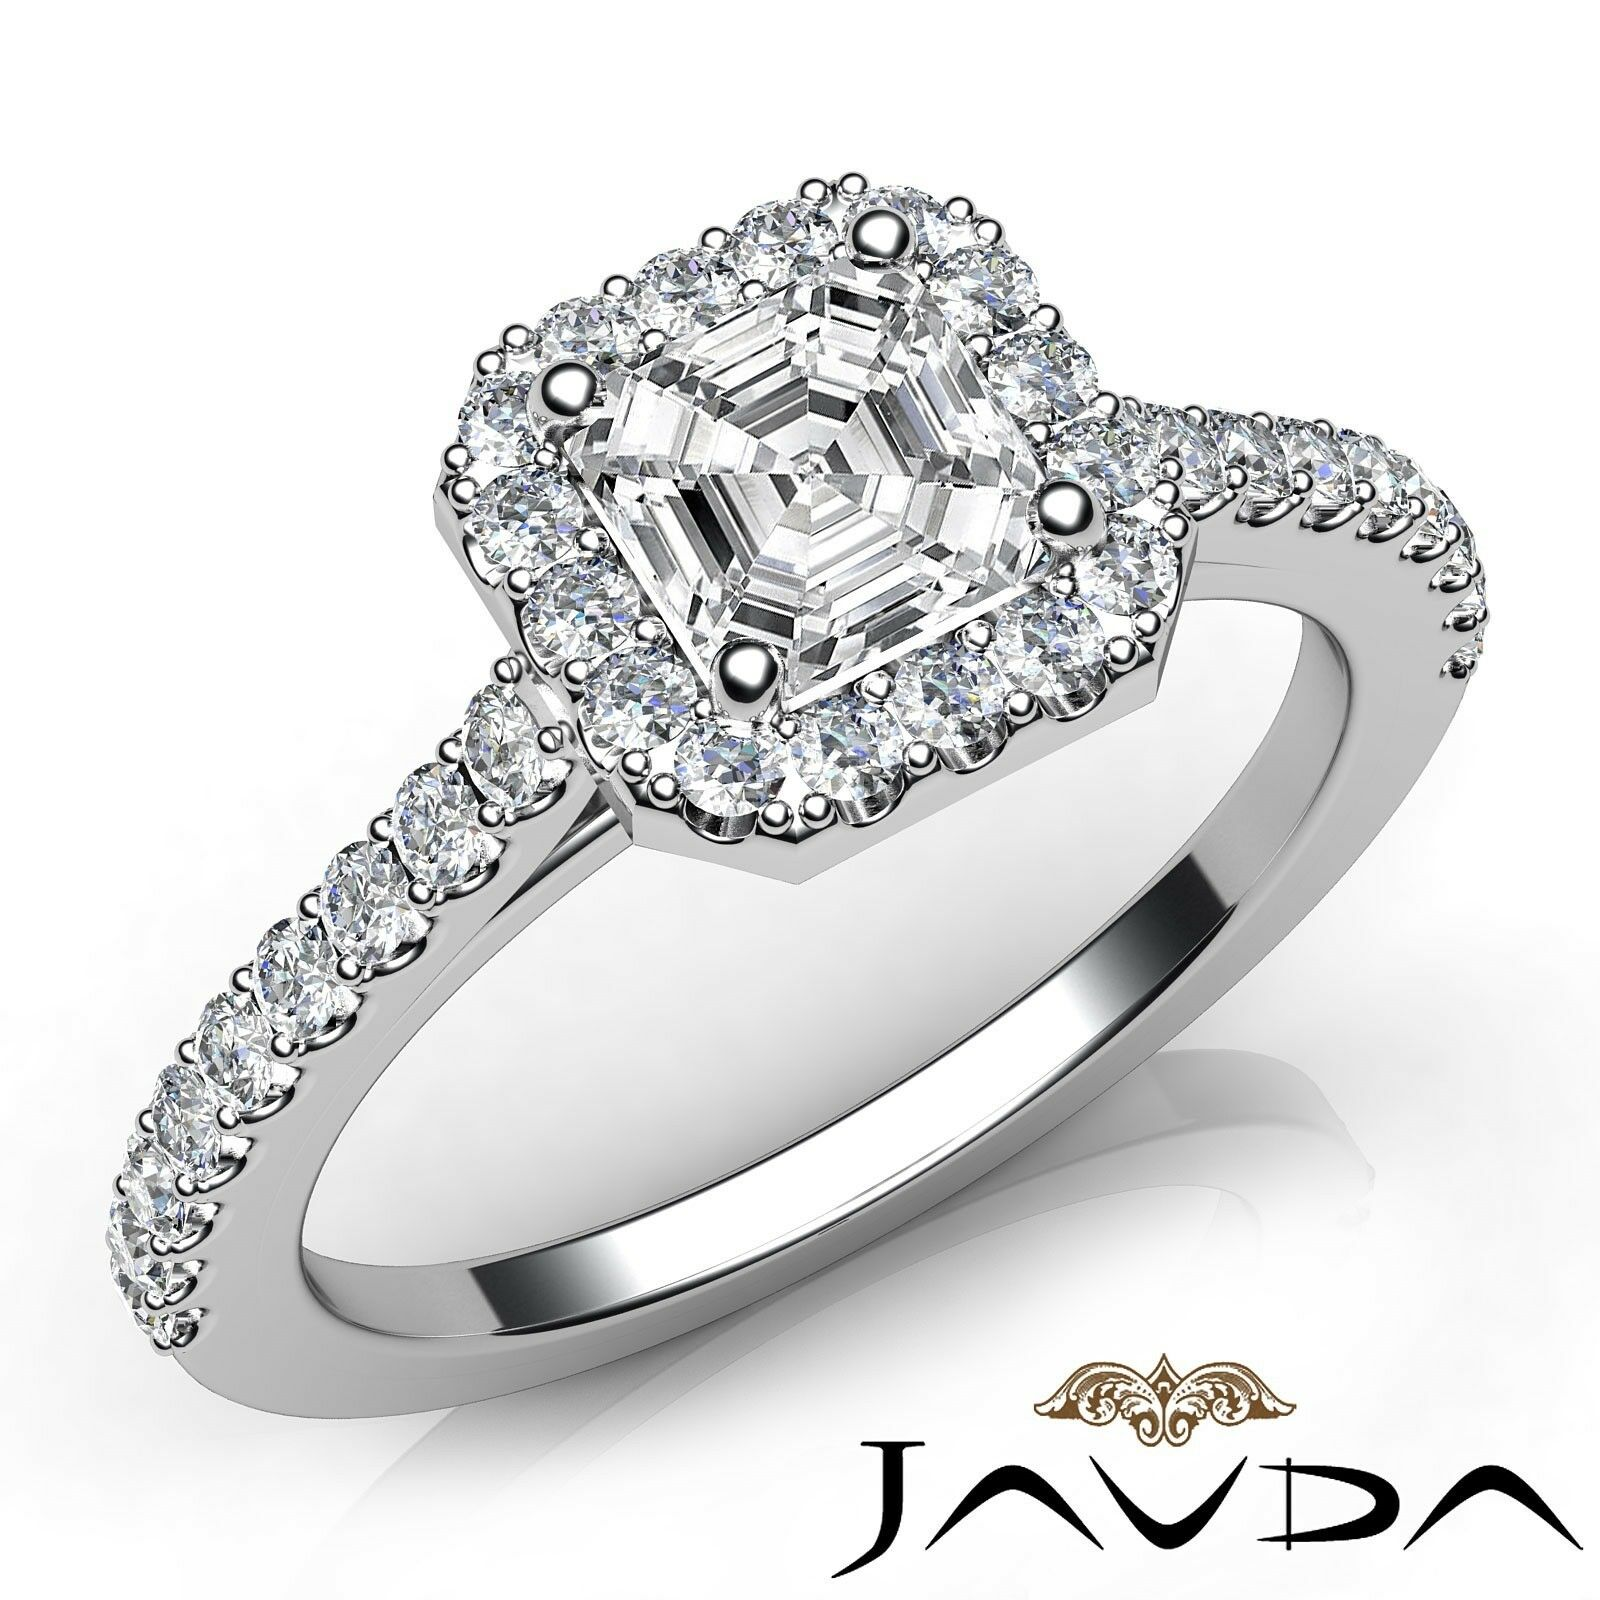 1.51ctw Gala Halo Pave Asscher Diamond Engagement Ring GIA E-VS1 White Gold New